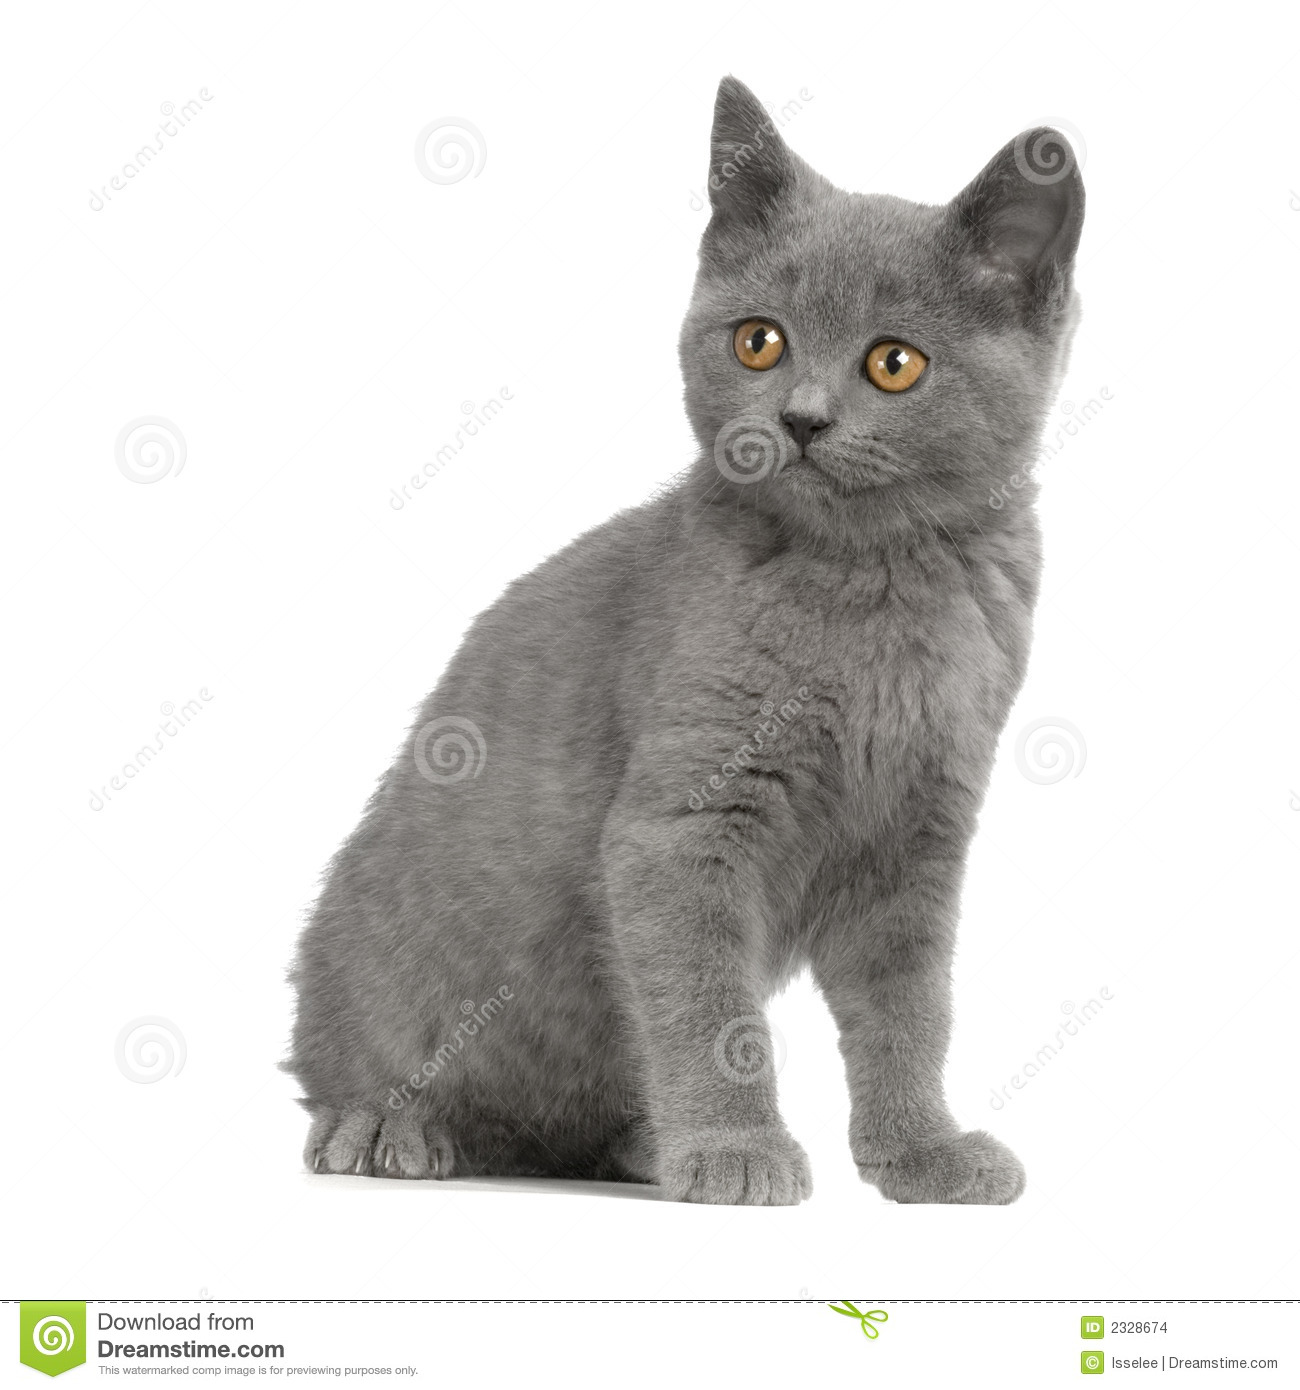 Chartreux clipart #4, Download drawings